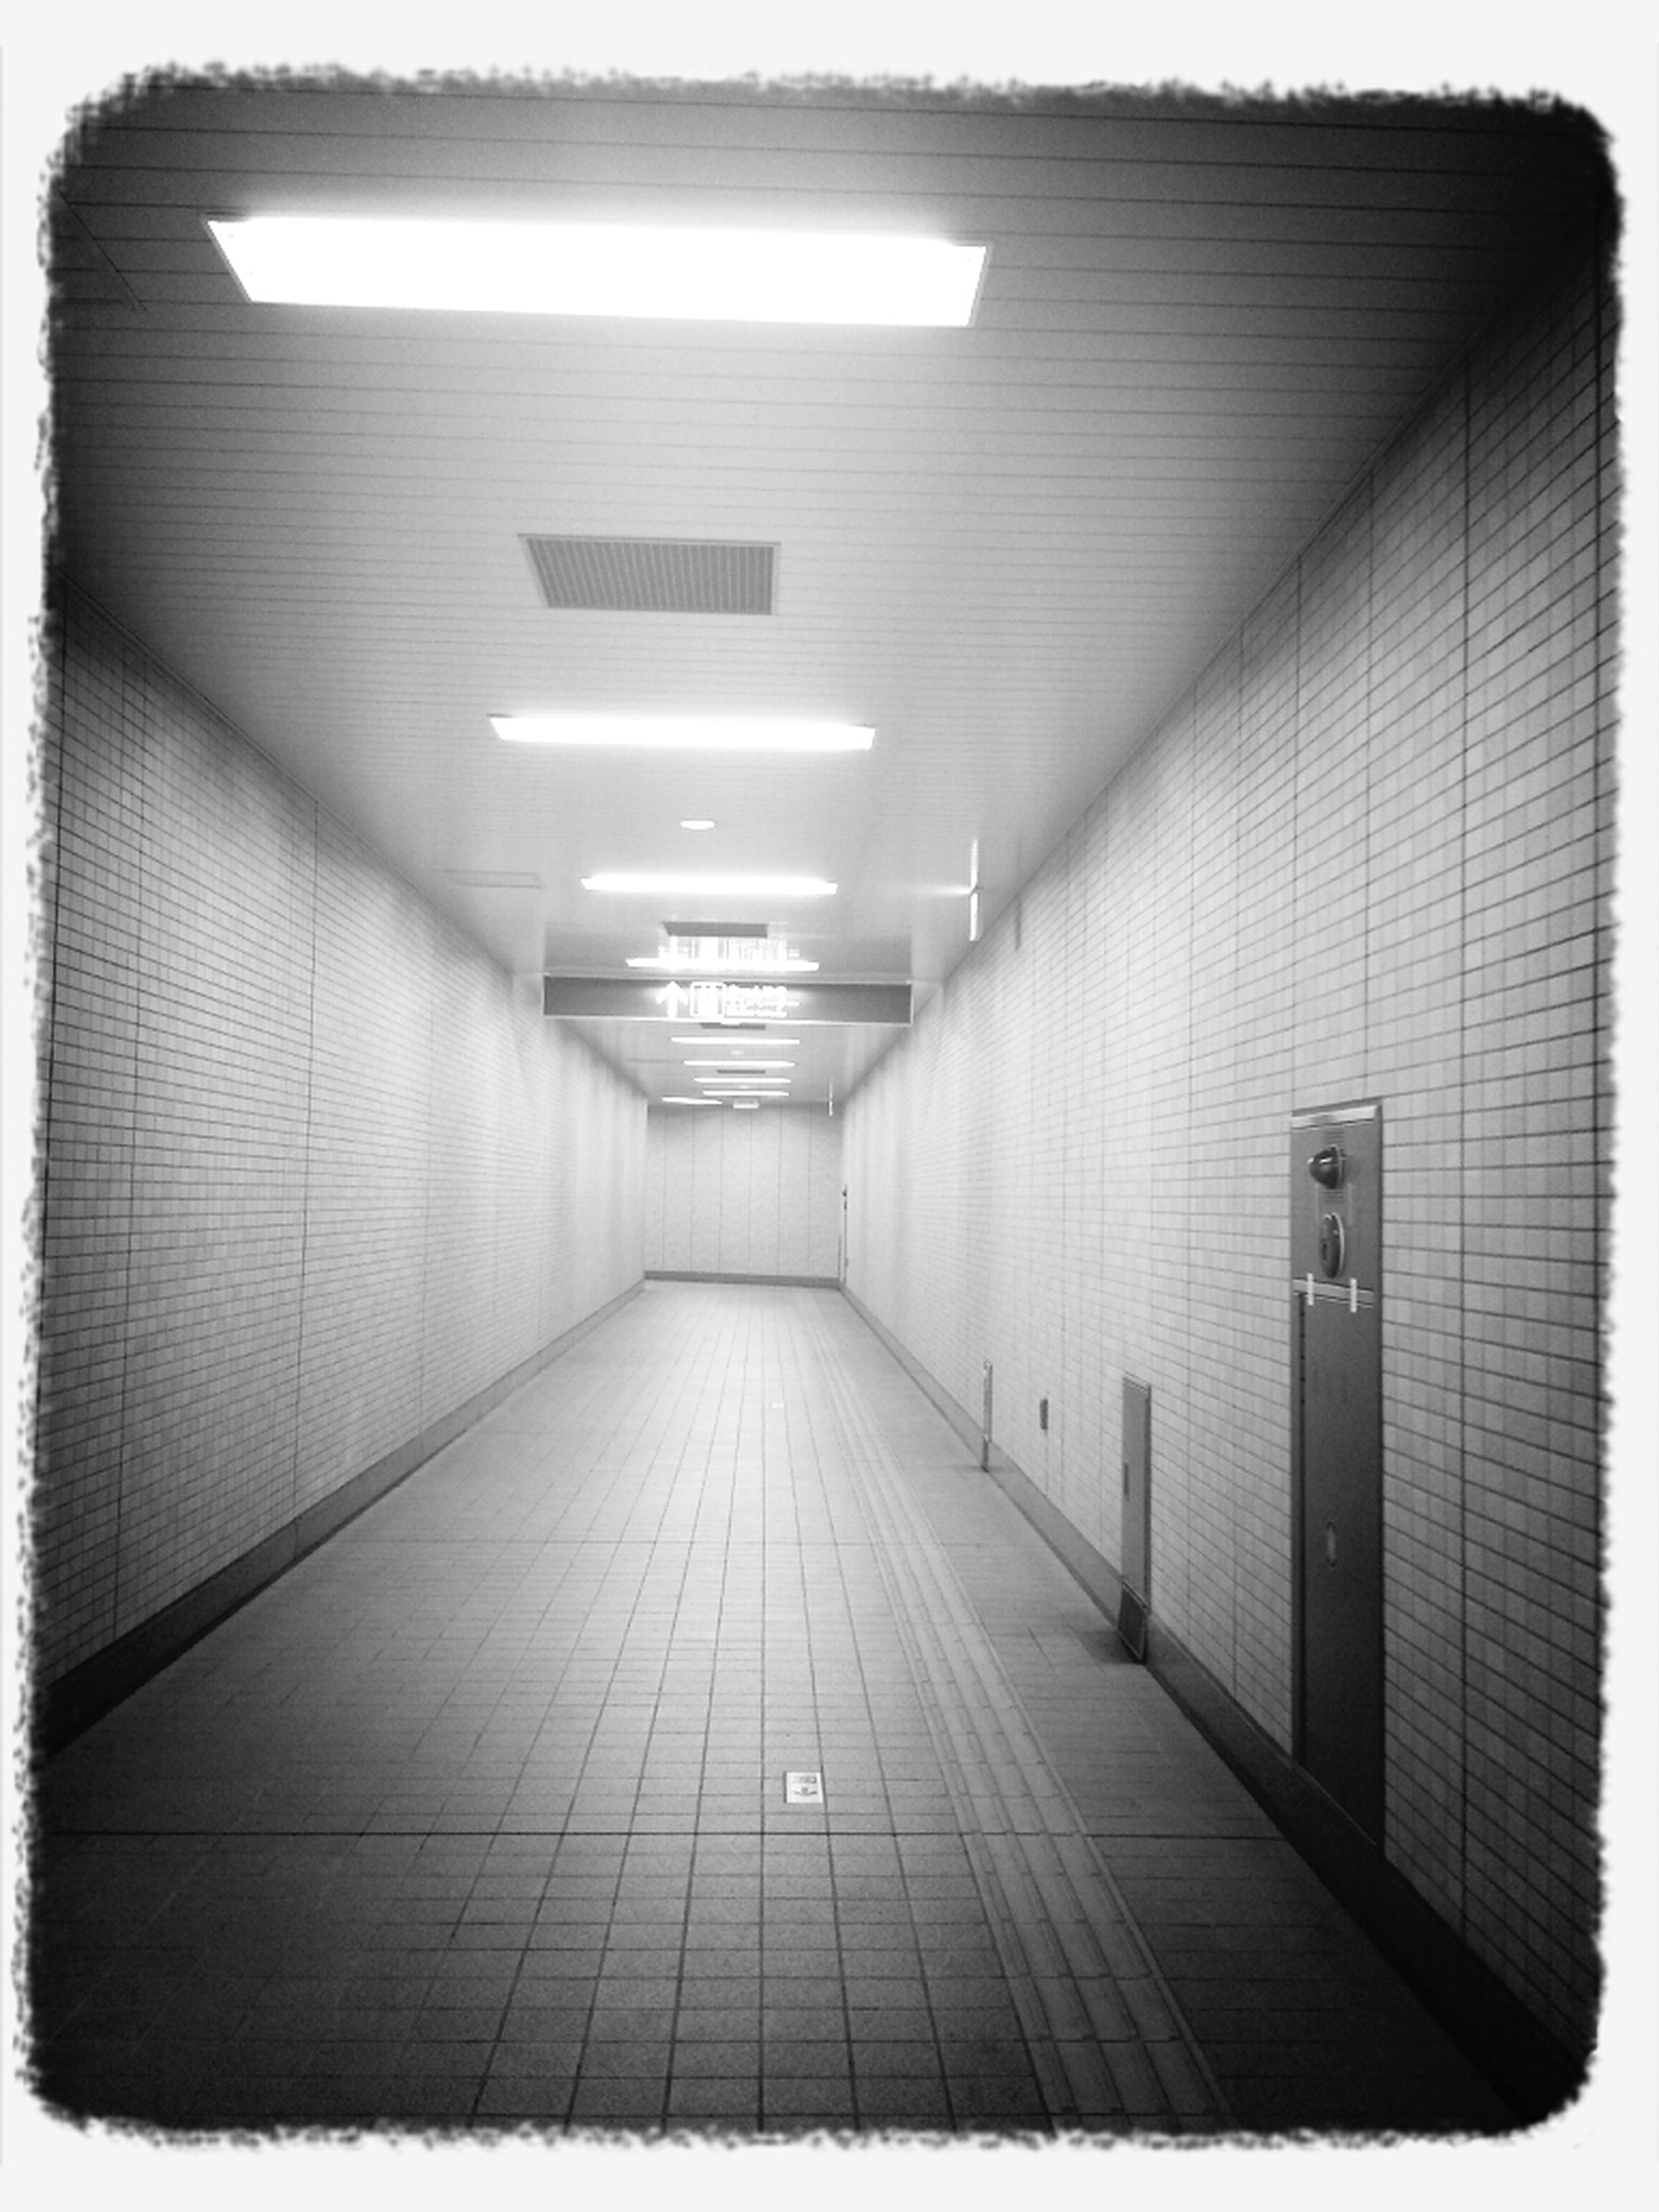 indoors, transfer print, the way forward, illuminated, architecture, auto post production filter, built structure, diminishing perspective, lighting equipment, empty, wall - building feature, absence, ceiling, corridor, tunnel, vanishing point, transportation, no people, wall, building